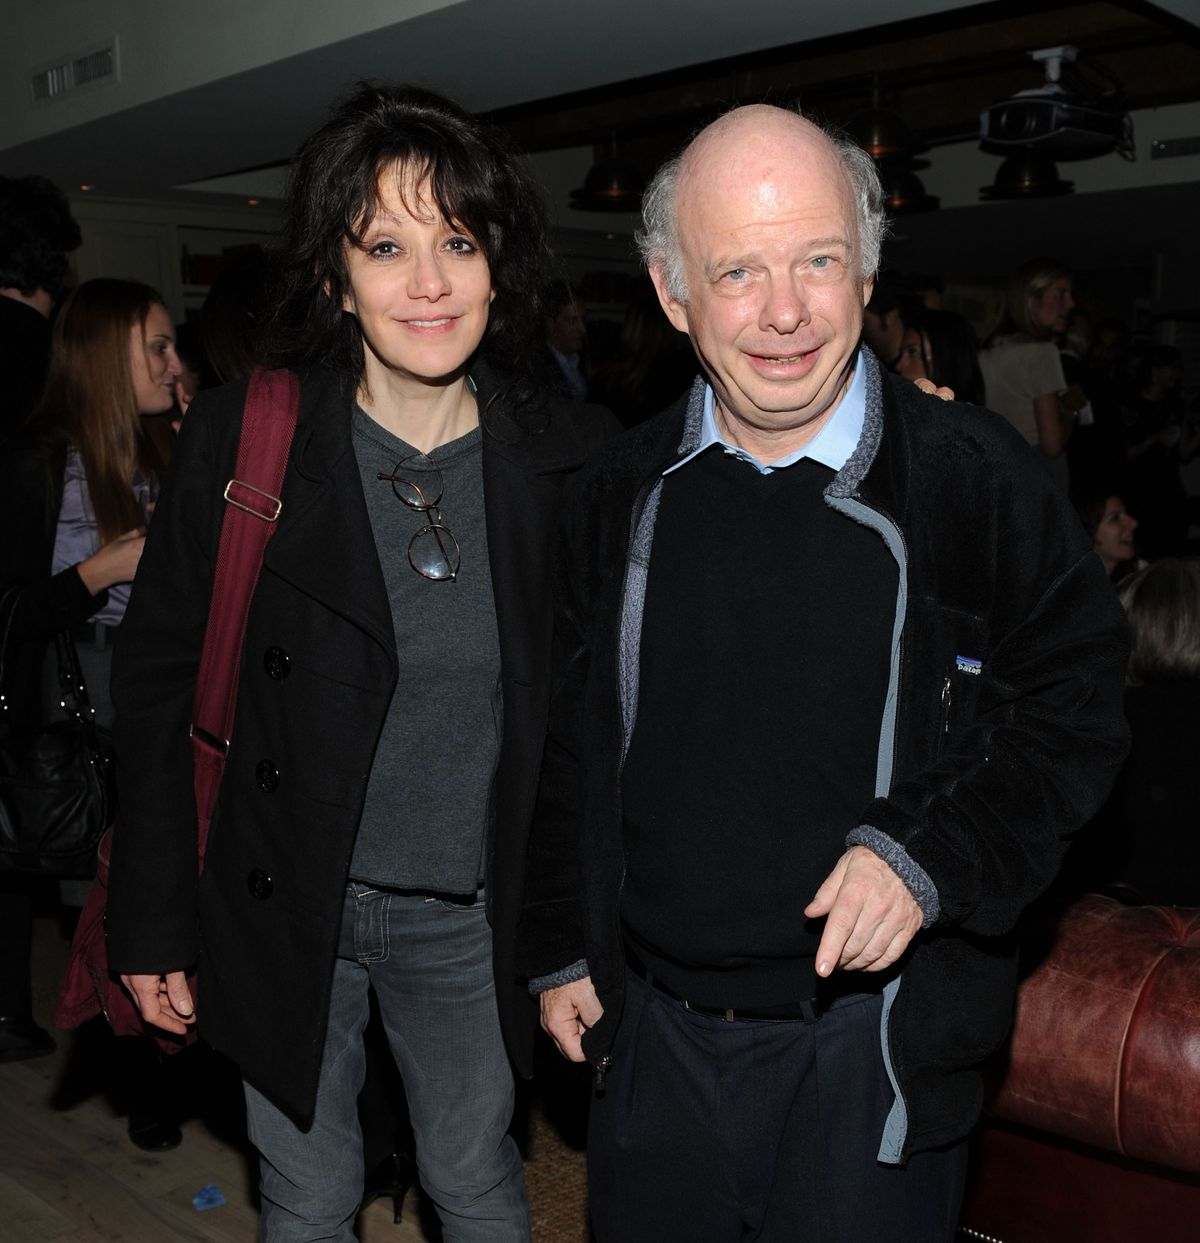 Heckerling and Shawn in 2009 (GettyImages)